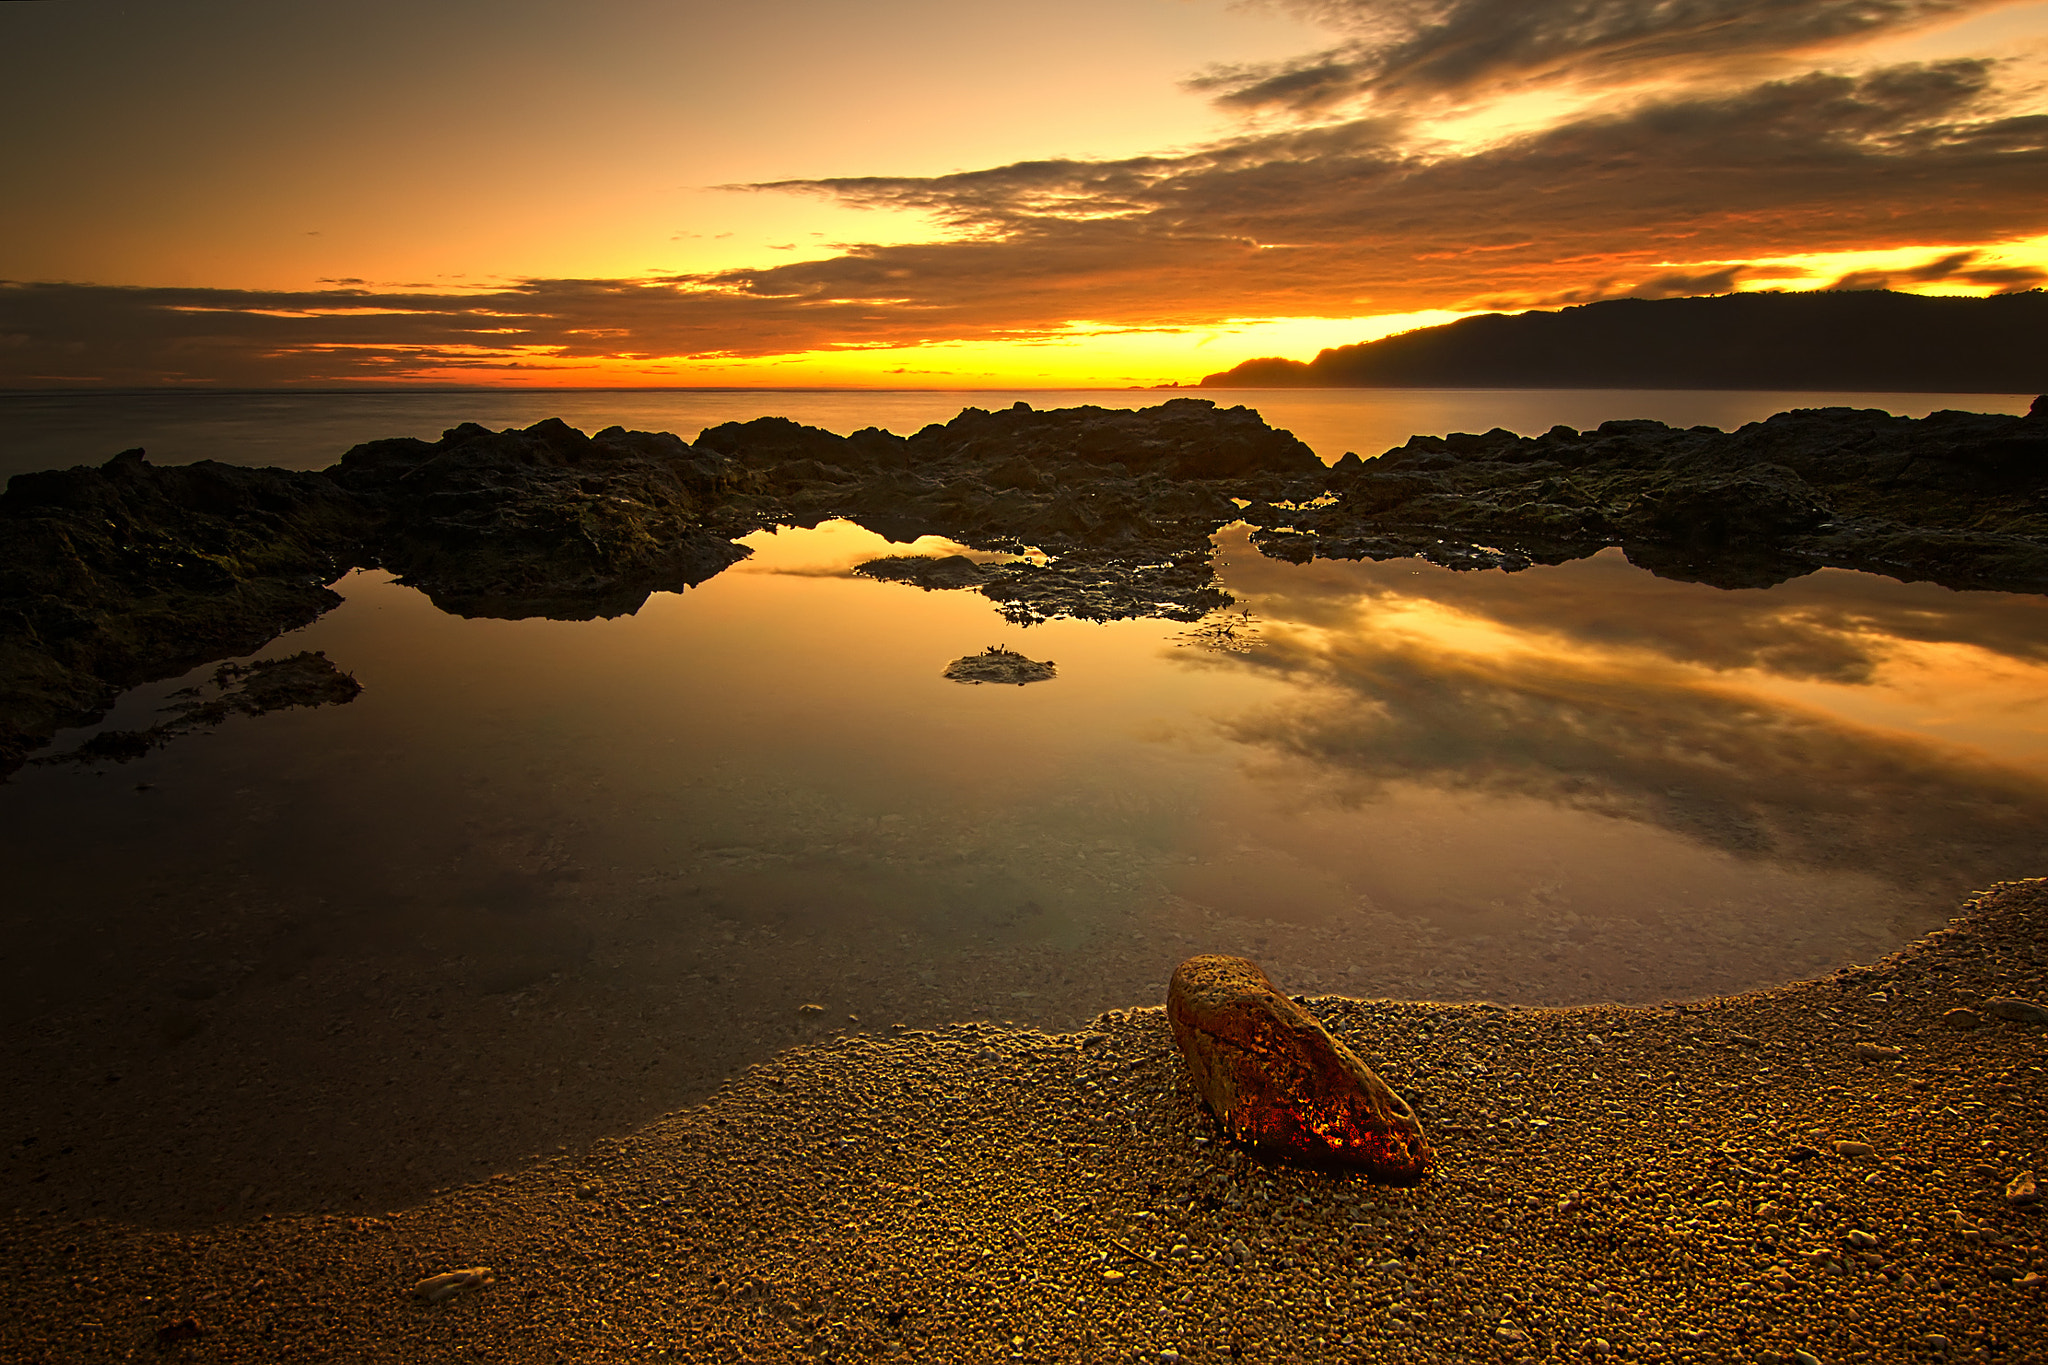 Photograph Sunset in Seger by Eep Ependi on 500px